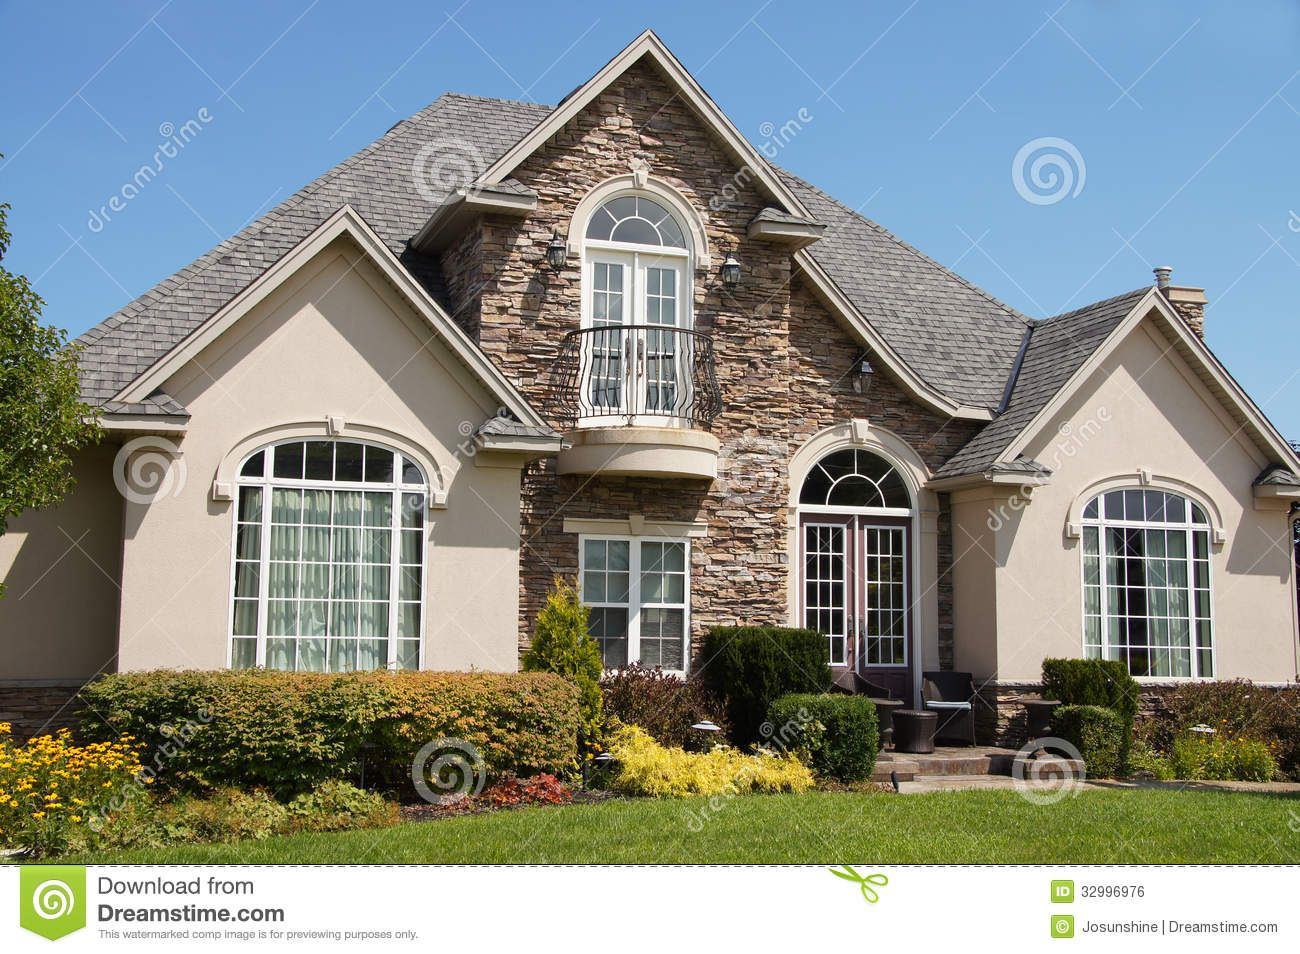 Stucco Stone House Pretty Windows Royalty Free Stock Image - Image